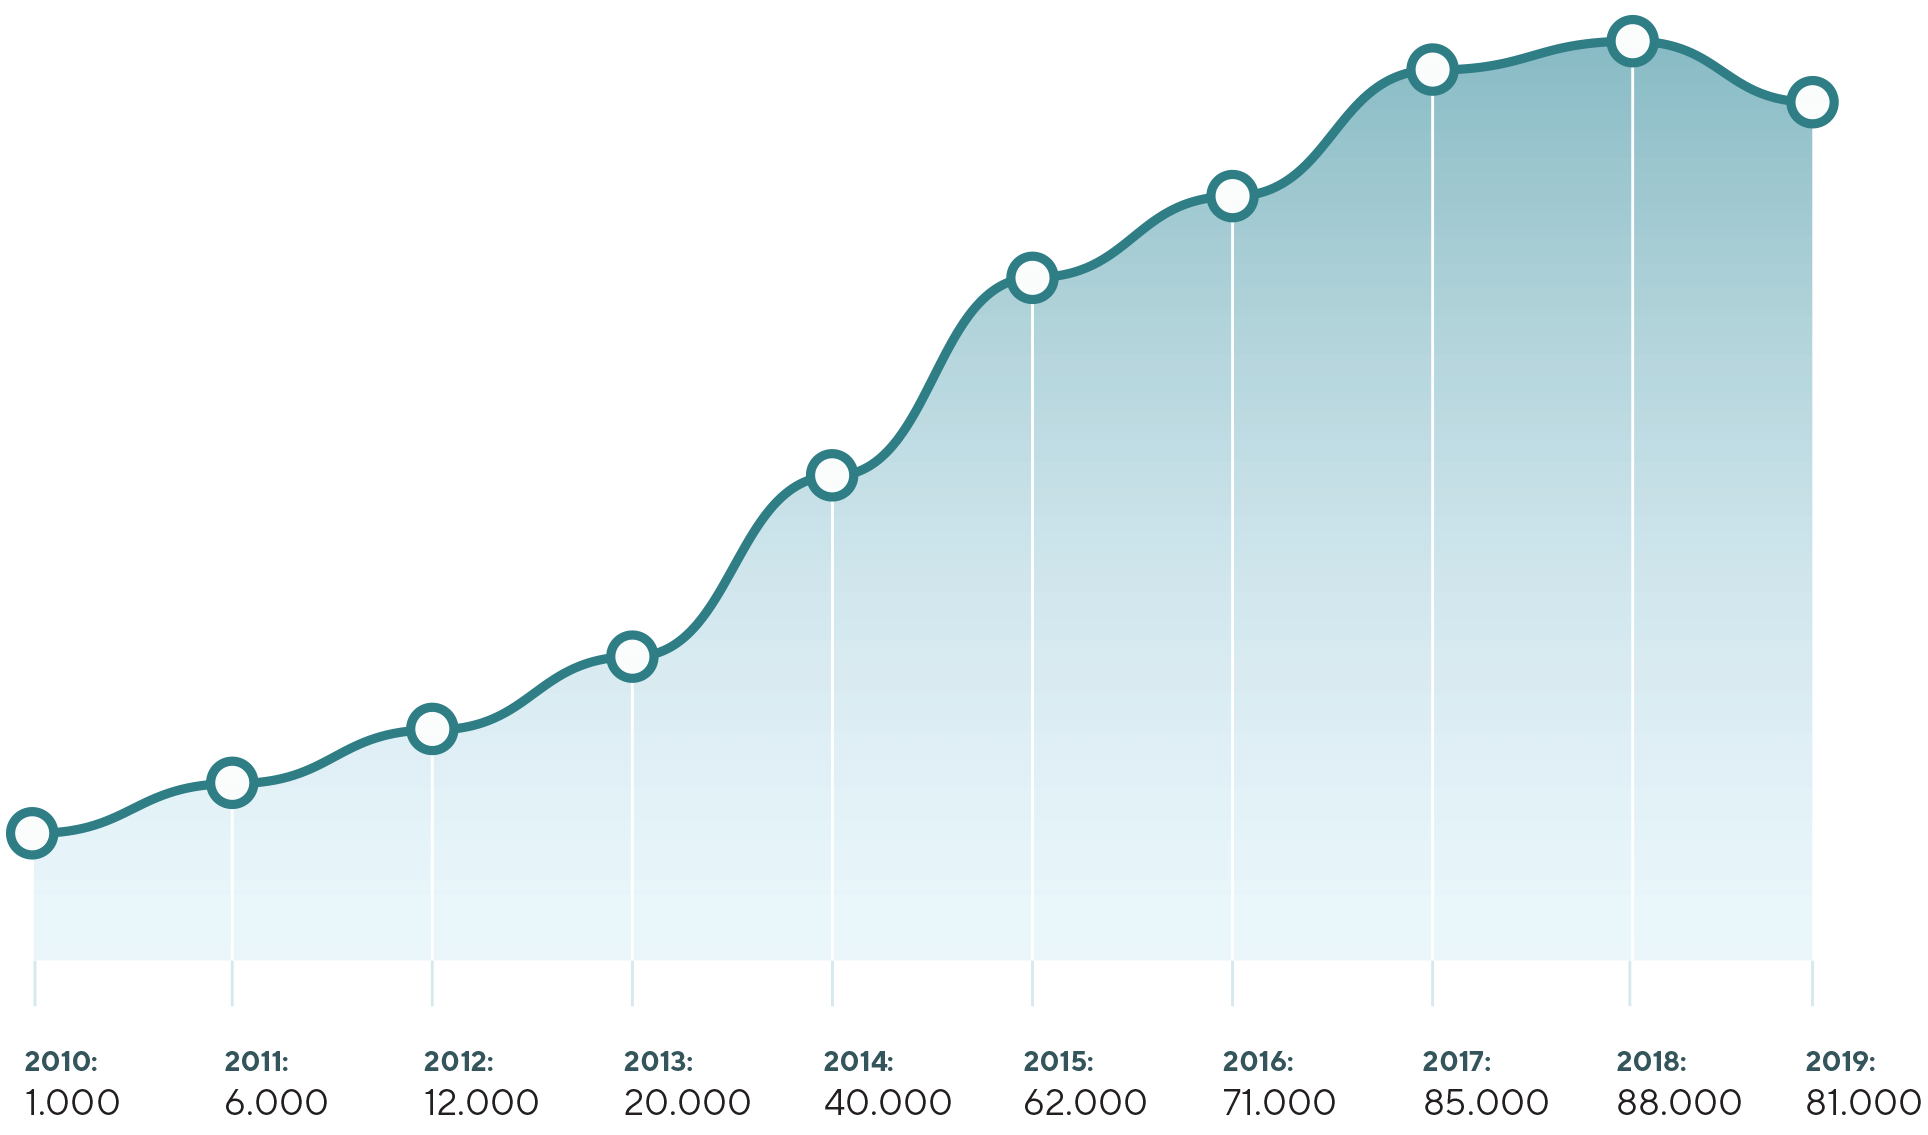 Graph showing visiting numbers from 2010 (1000) to 2018 (81000)